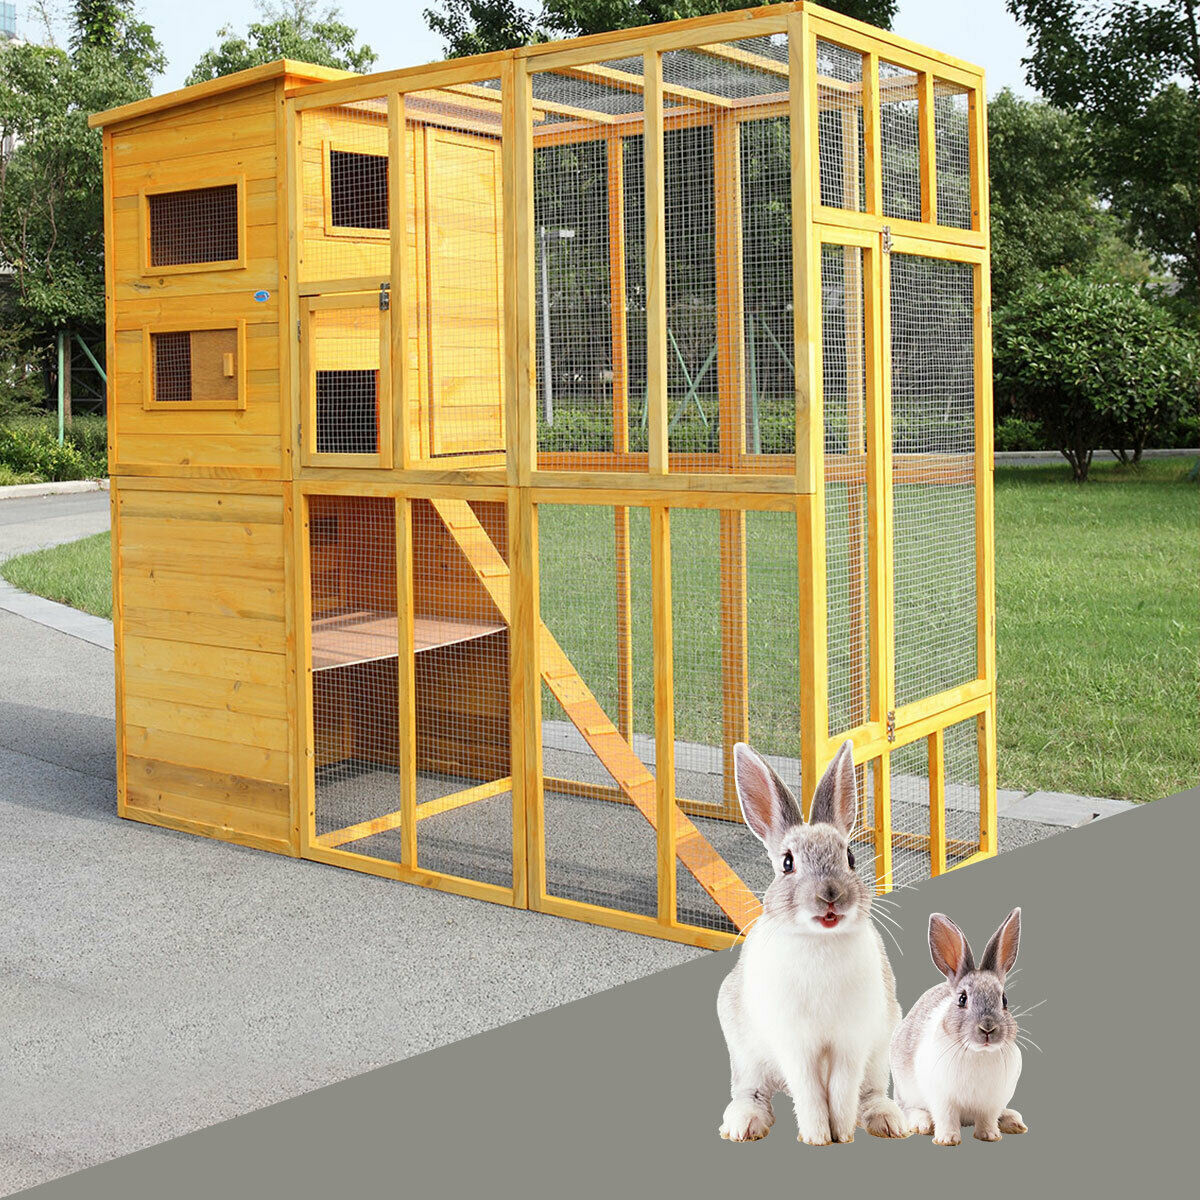 Outdoor Cat Pet House Run Enclosure Wooden Fun Small Animal Shelter Tunnel 29799 Furniture Scratchers